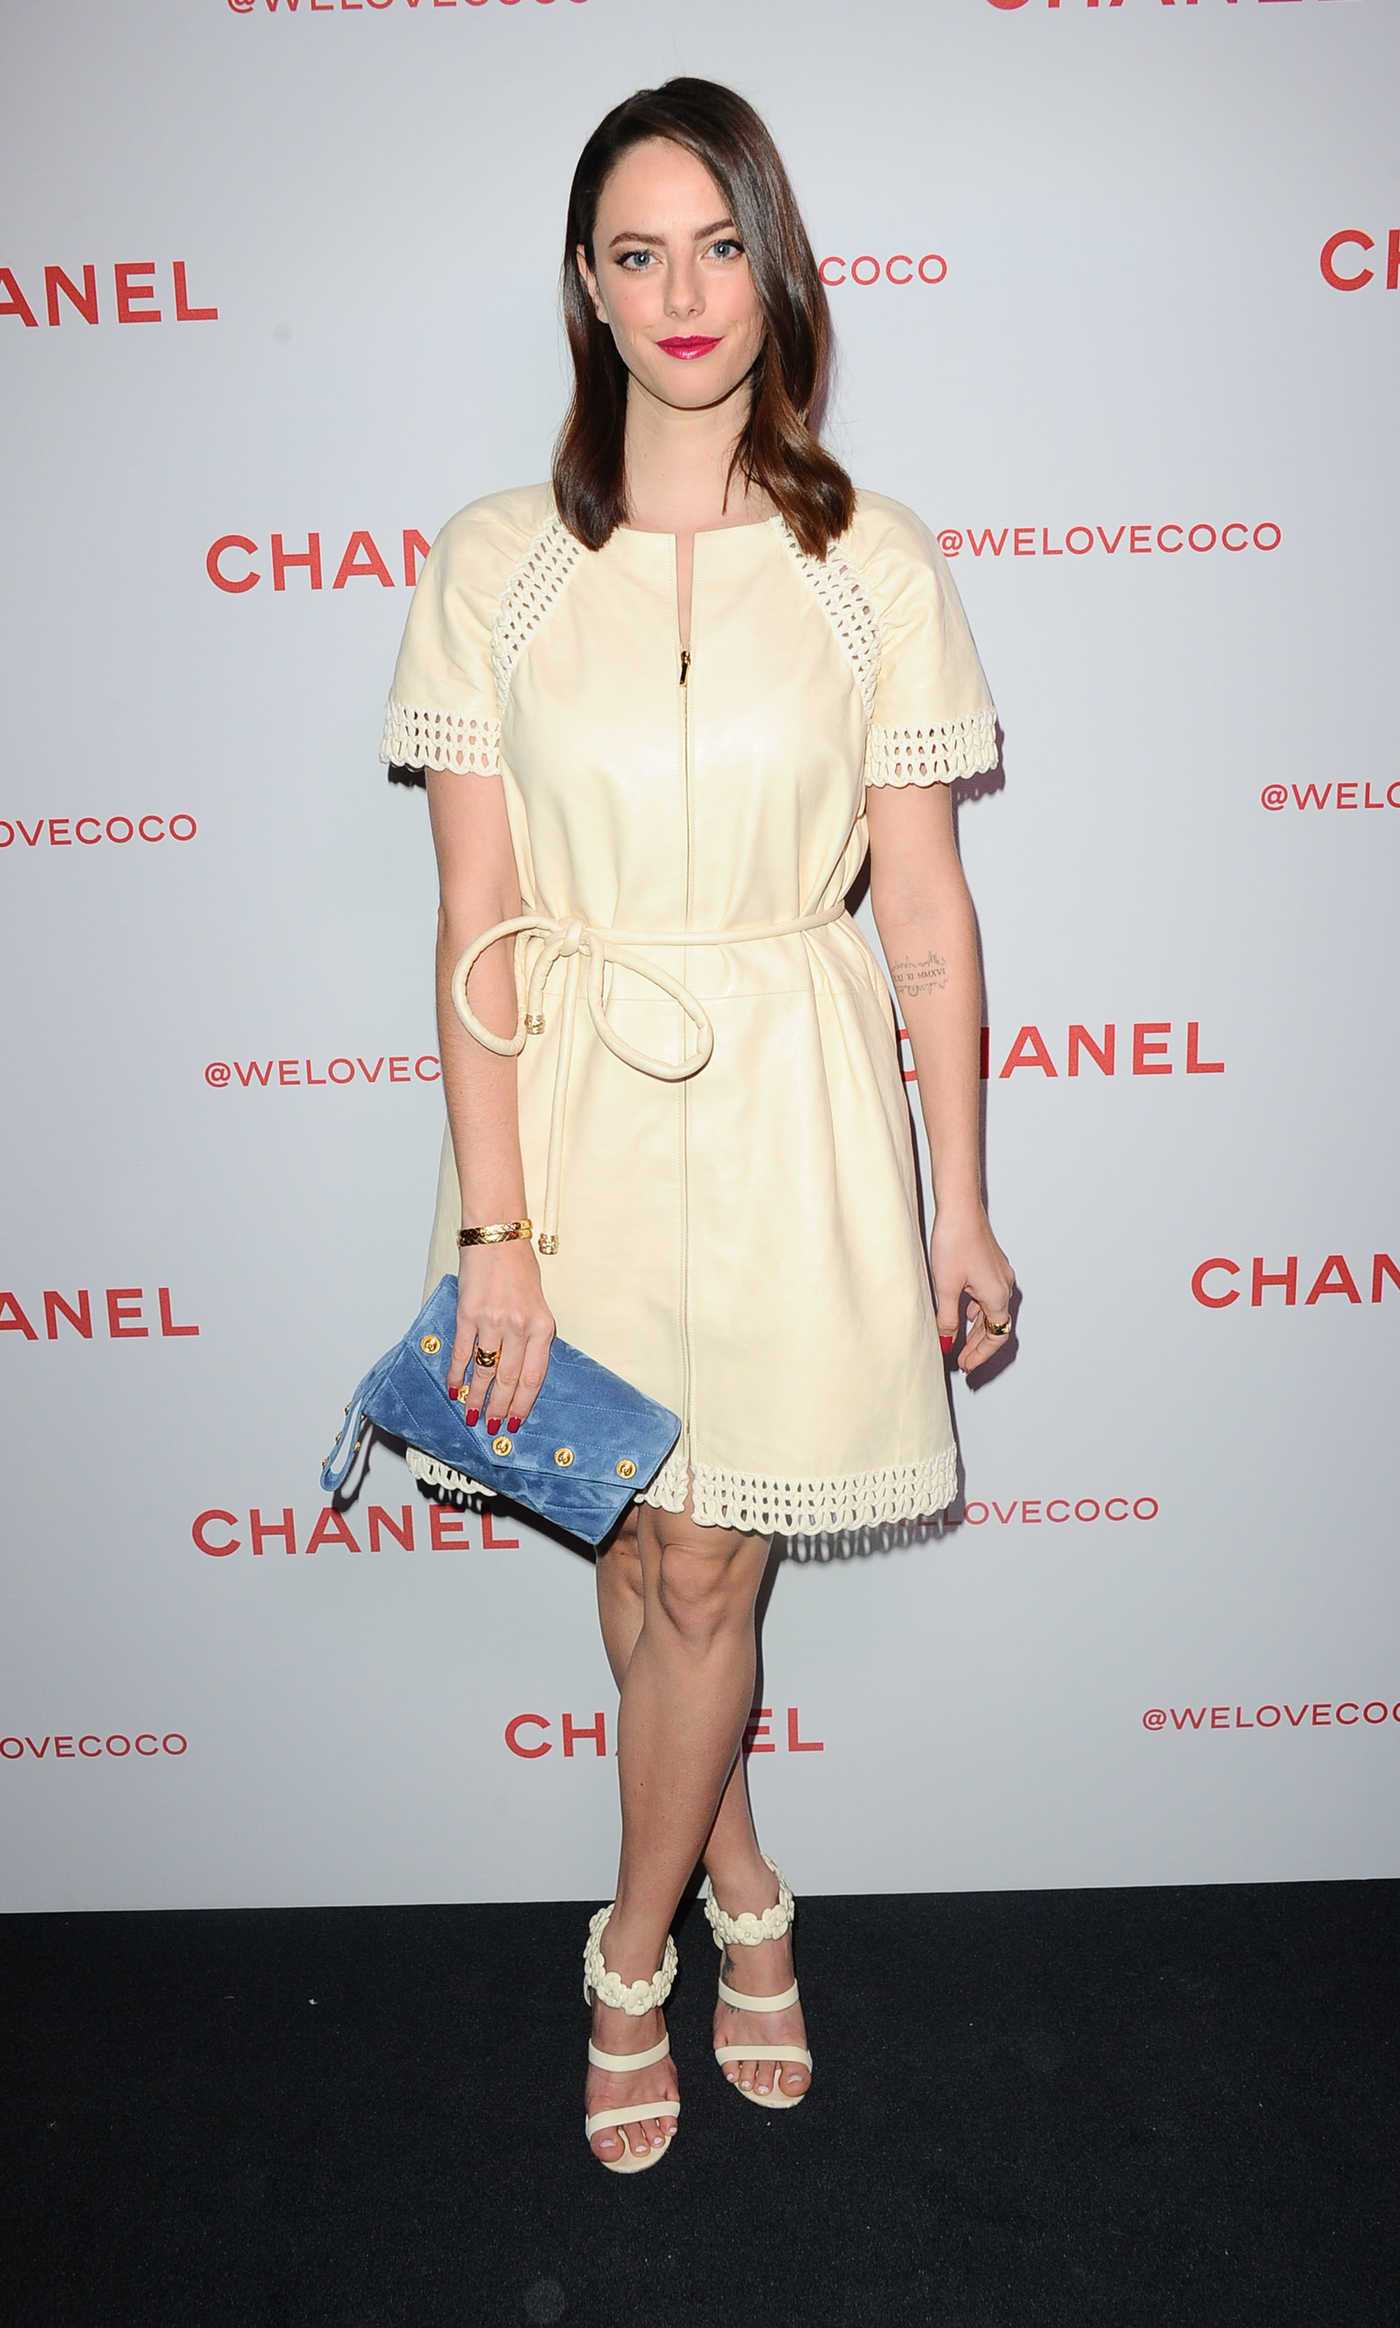 Kaya Scodelario Attends the Chanel Party to Celebrate the Chanel Beauty House in LA 02/28/2018